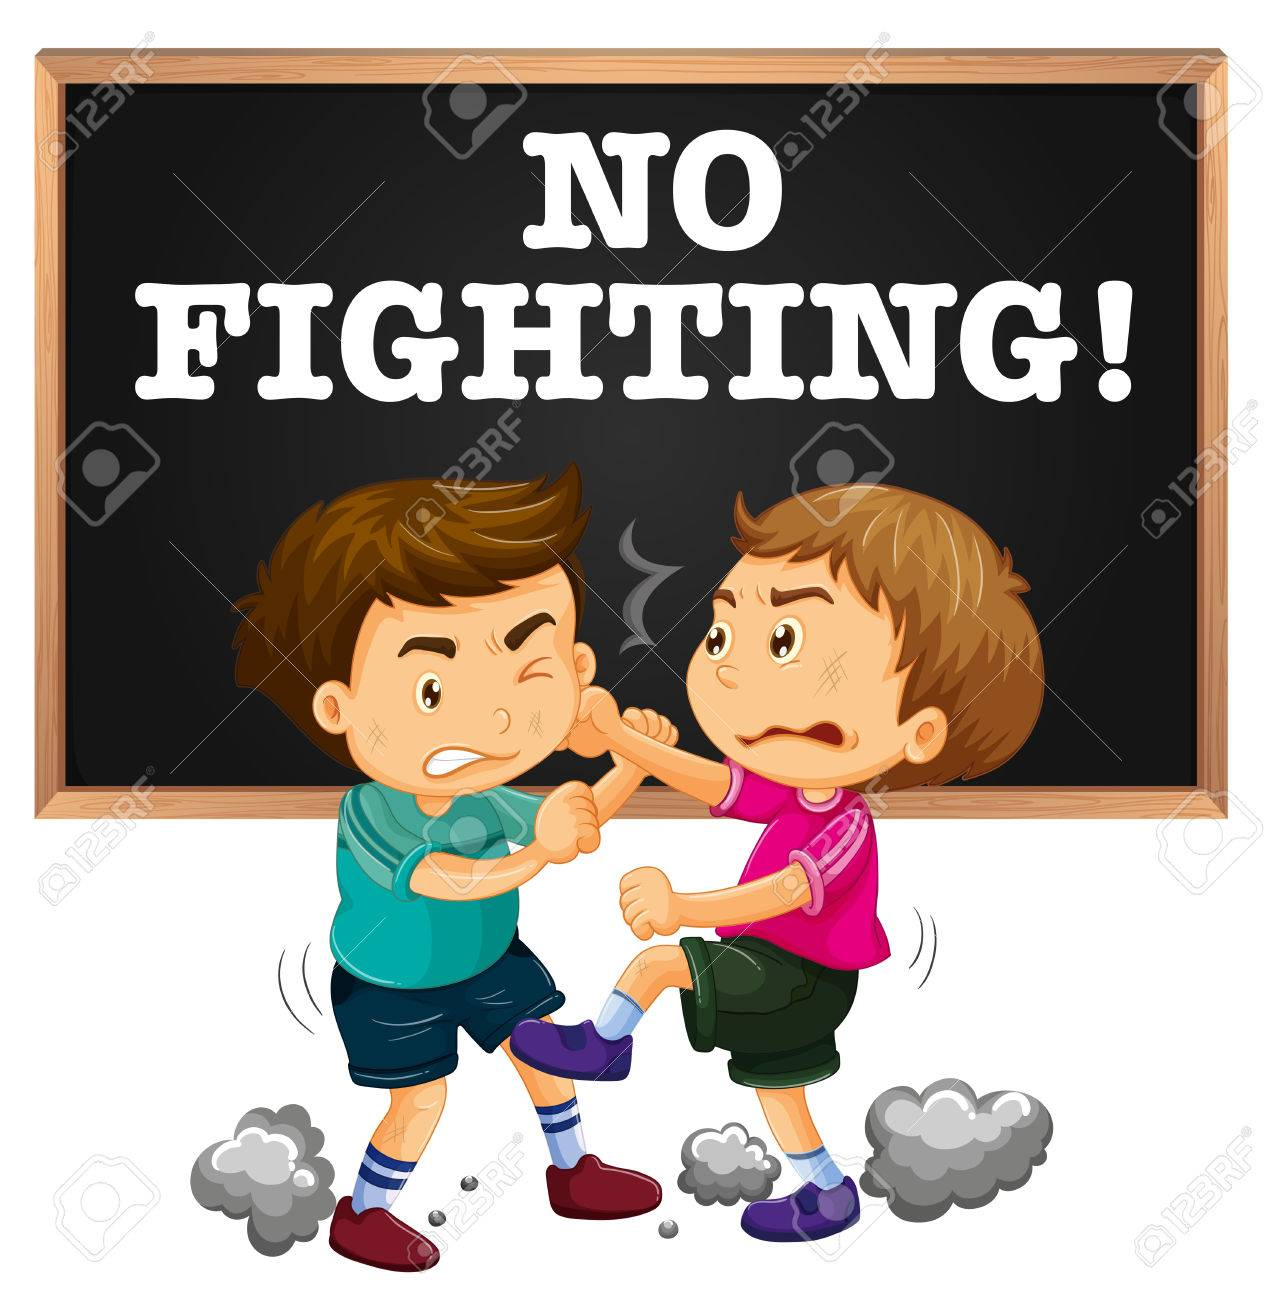 No fighting sign and boy fighting illustration.